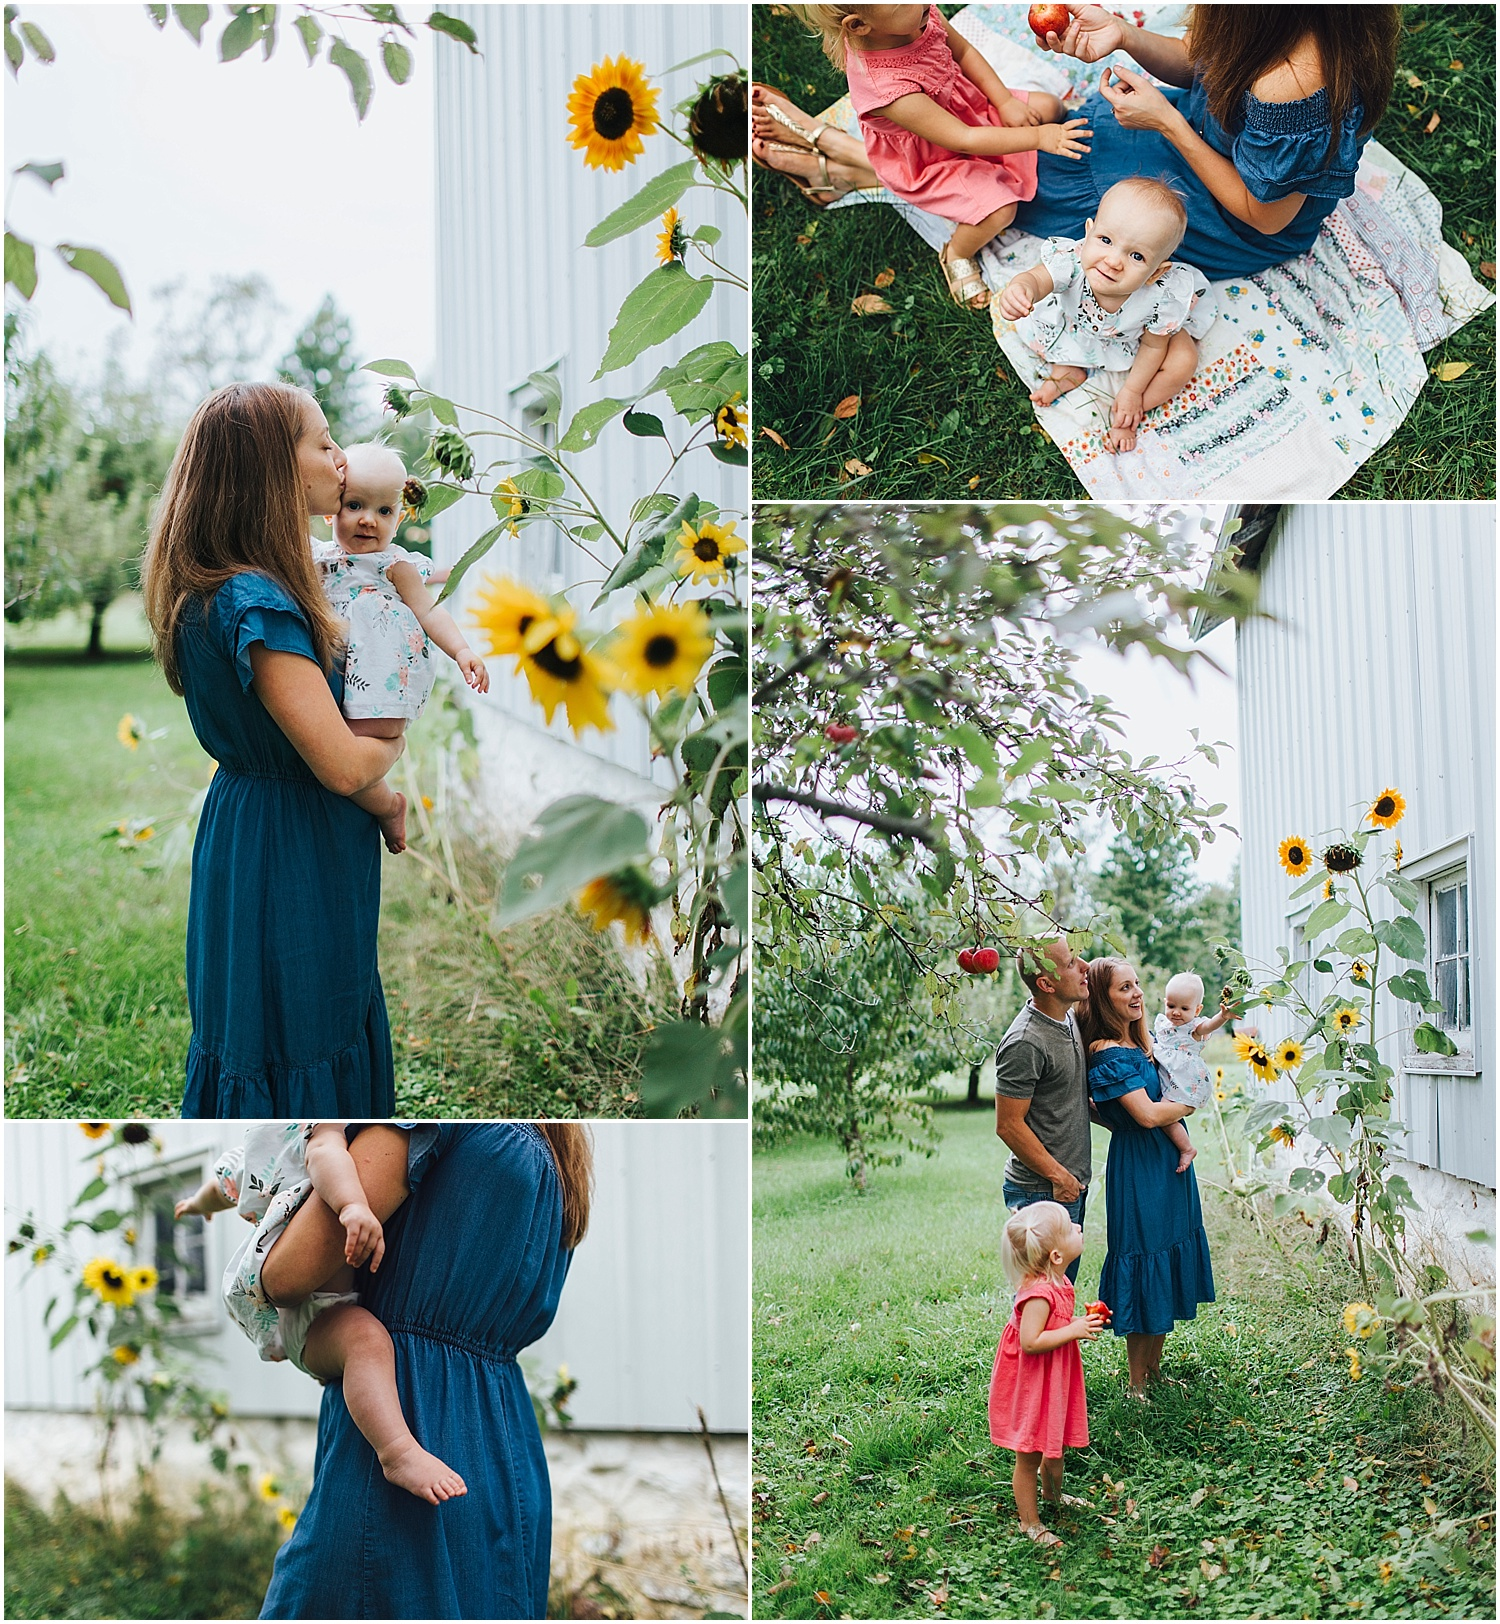 fall family photos by old barn with sunflowers